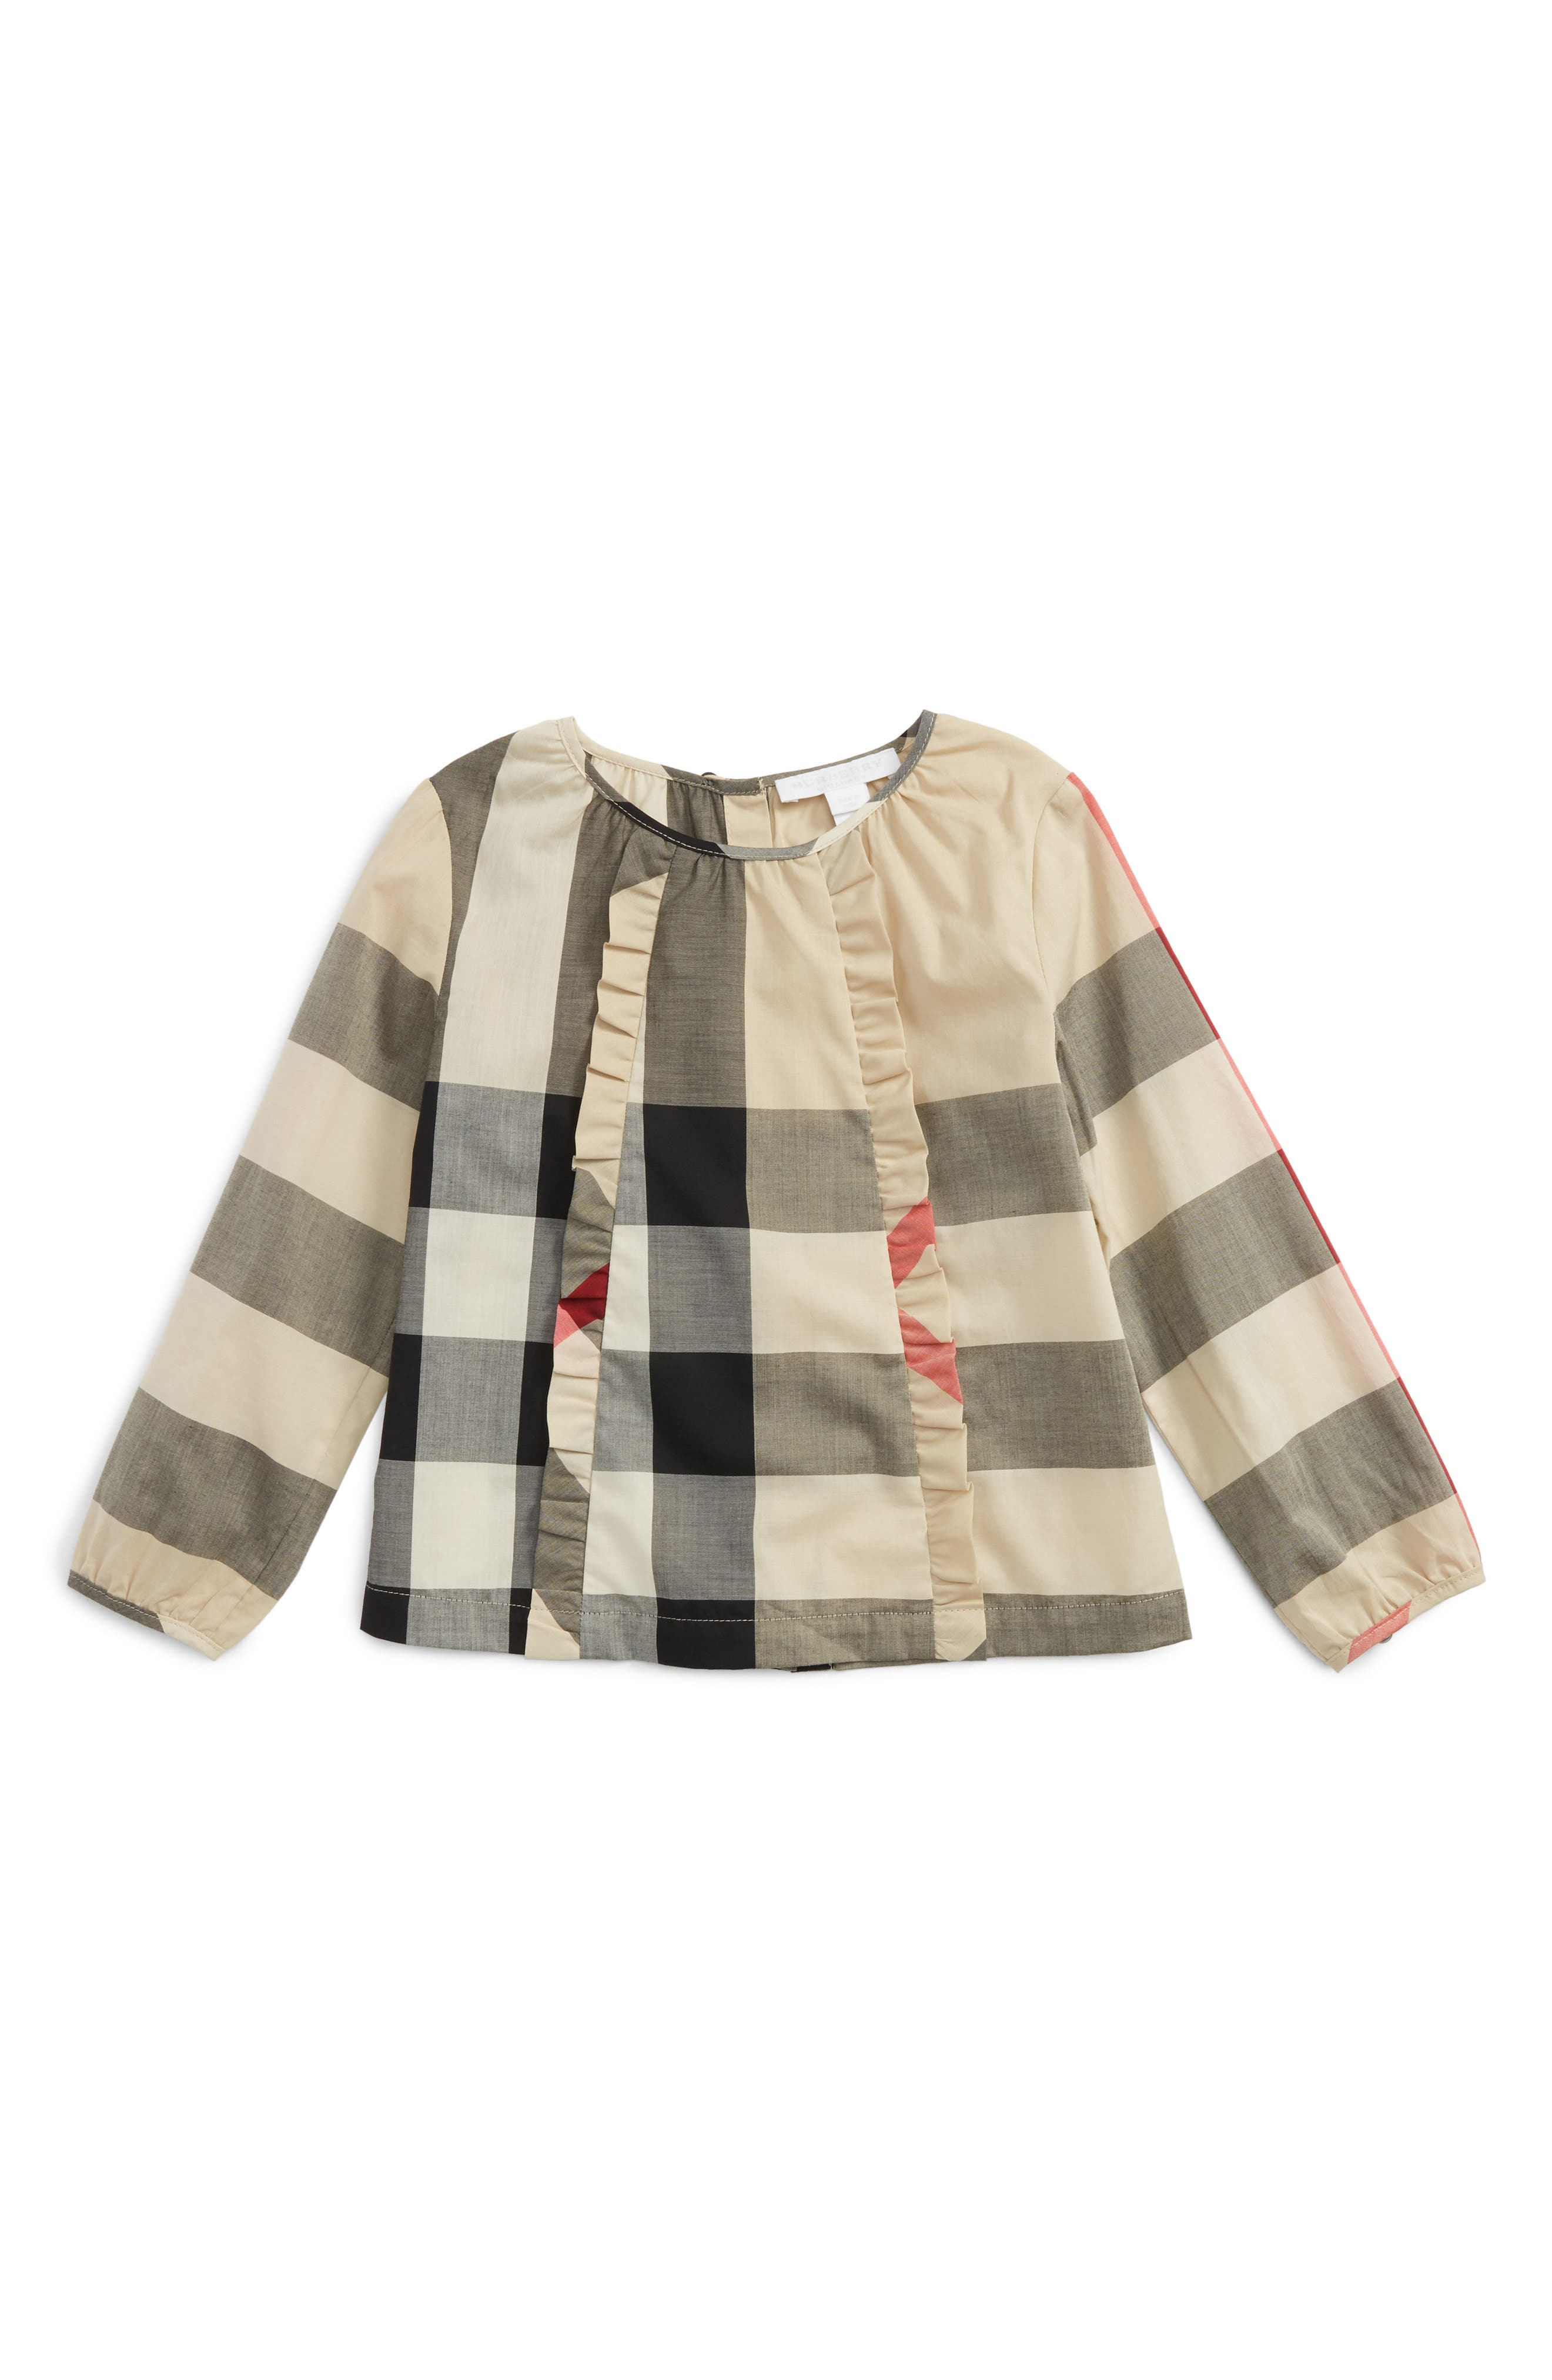 Burberry Agatha Check Print Top (Toddler Girls)